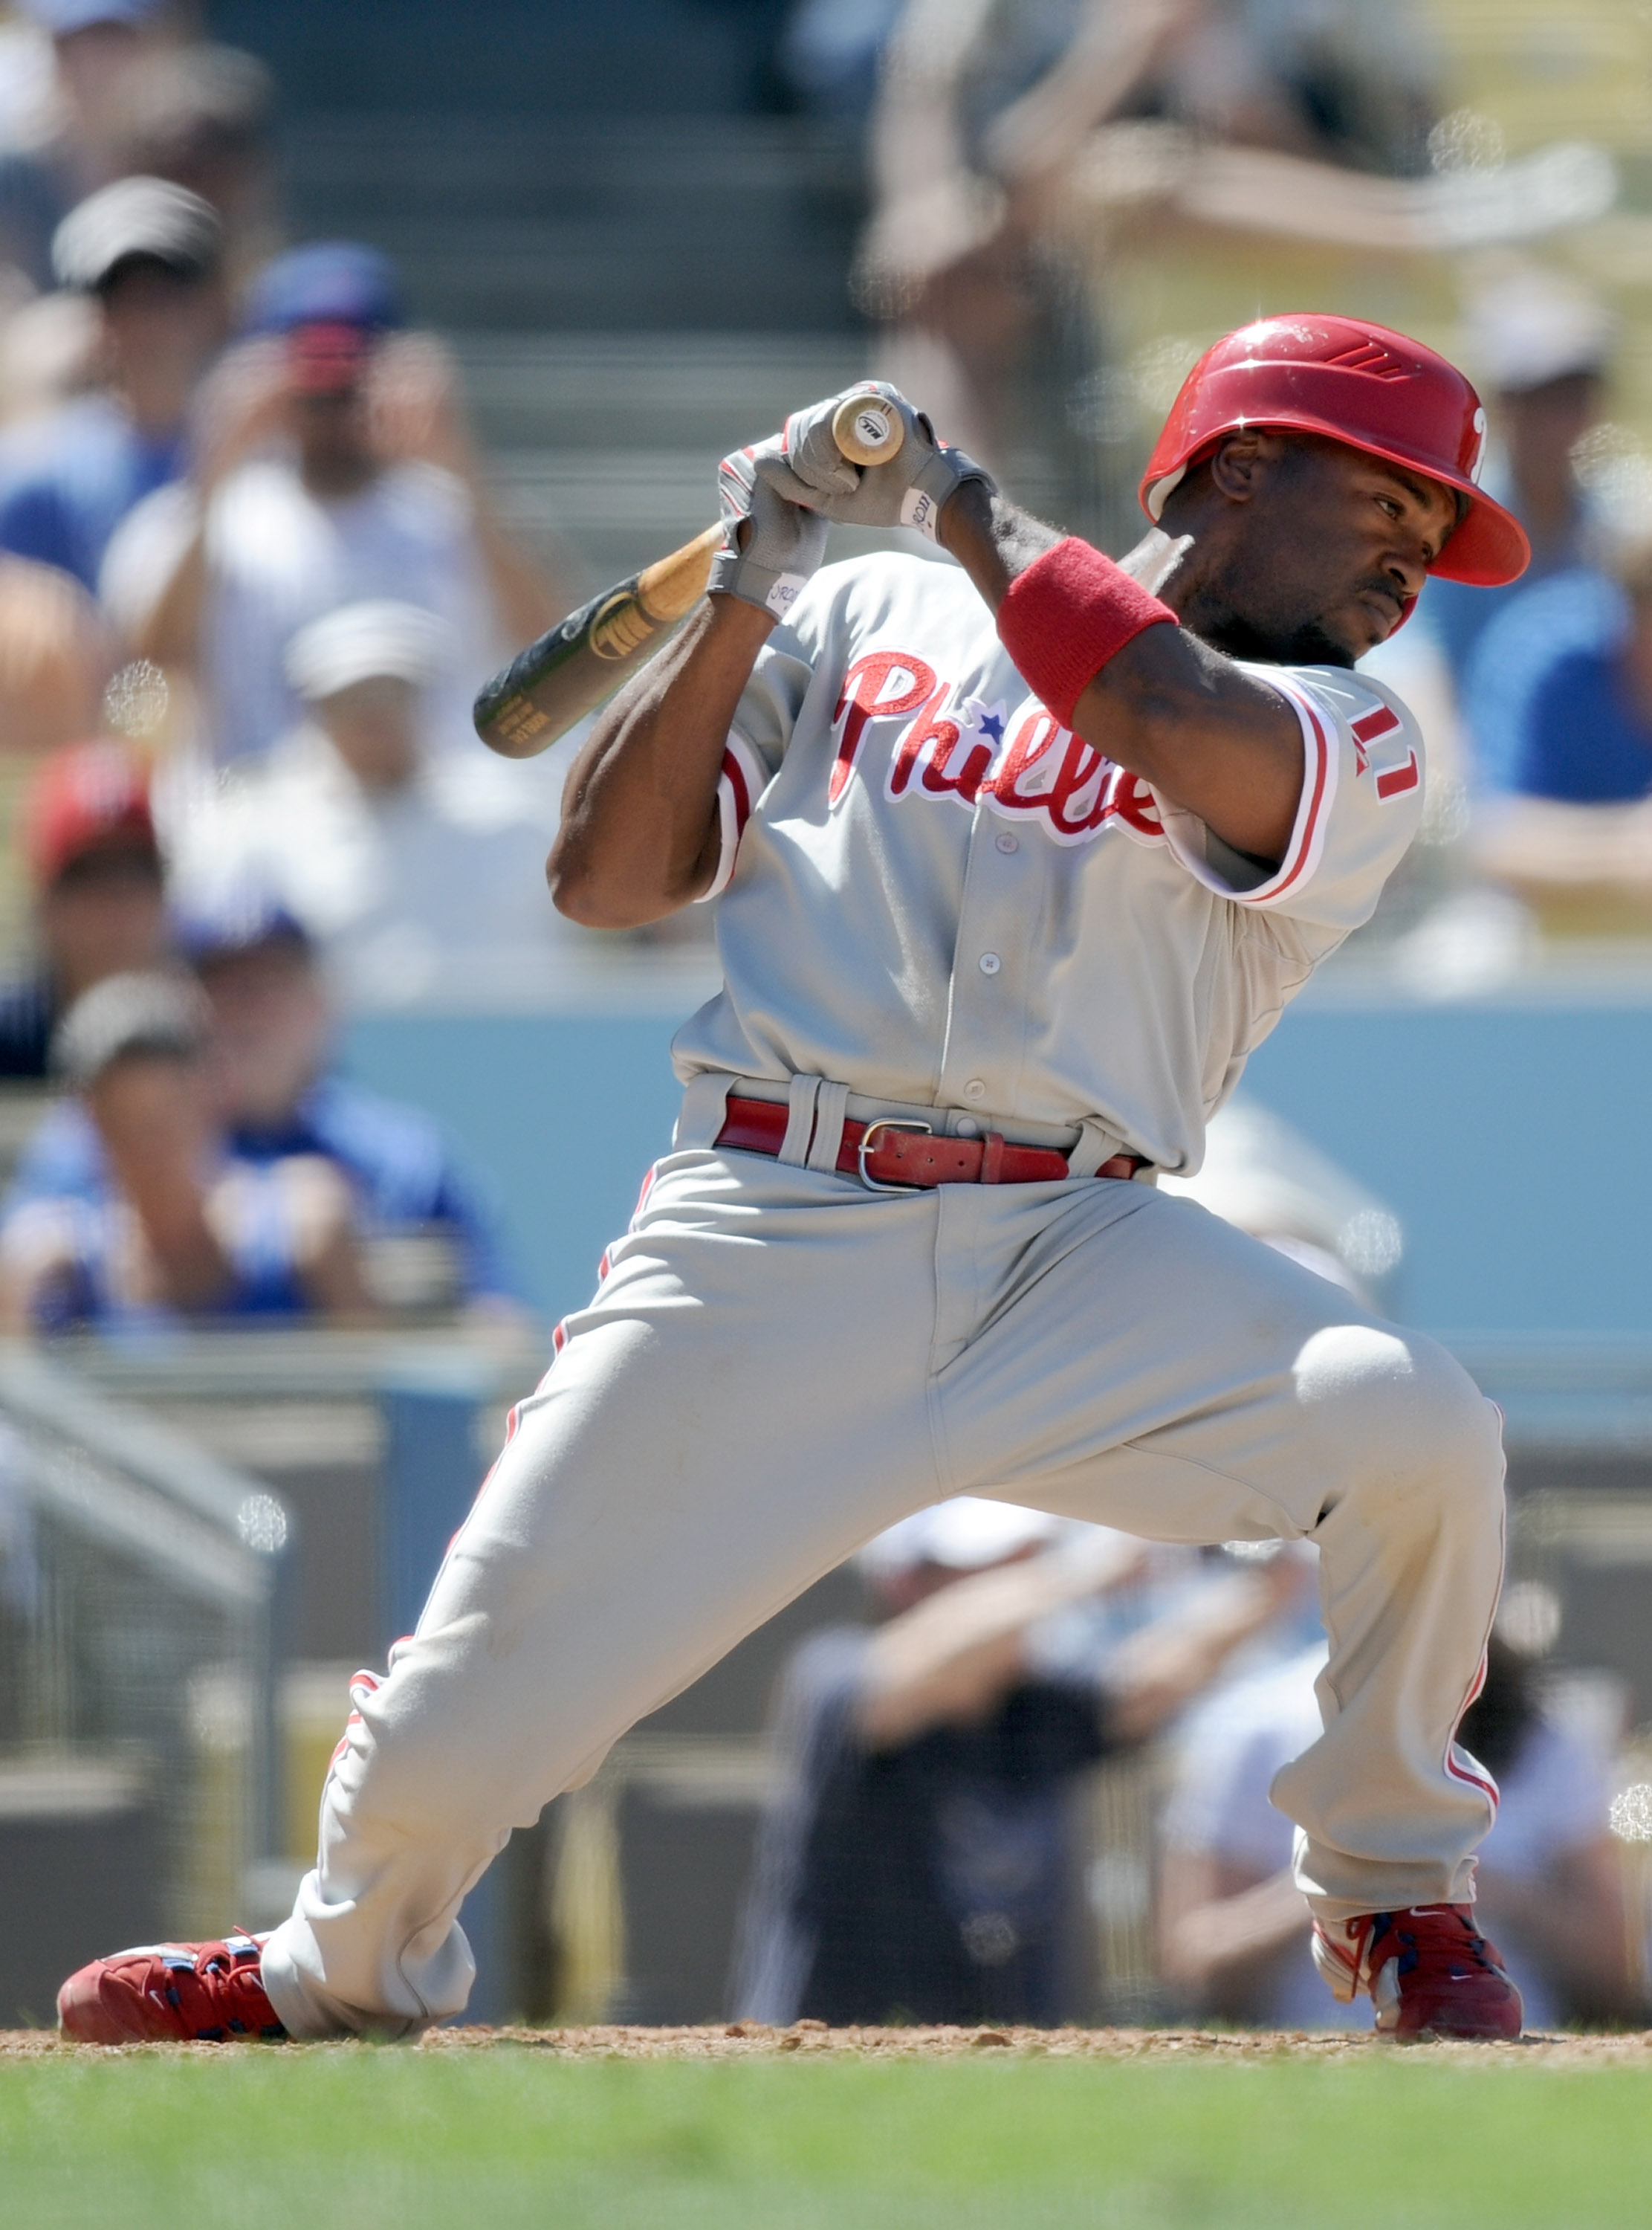 LOS ANGELES, CA - SEPTEMBER 01:  Jimmy Rollins #11 of the Philadelphia Phillies ducks a pitch against the Los Angeles Dodgers at Dodger Stadium on September 1, 2010 in Los Angeles, California.  (Photo by Harry How/Getty Images)